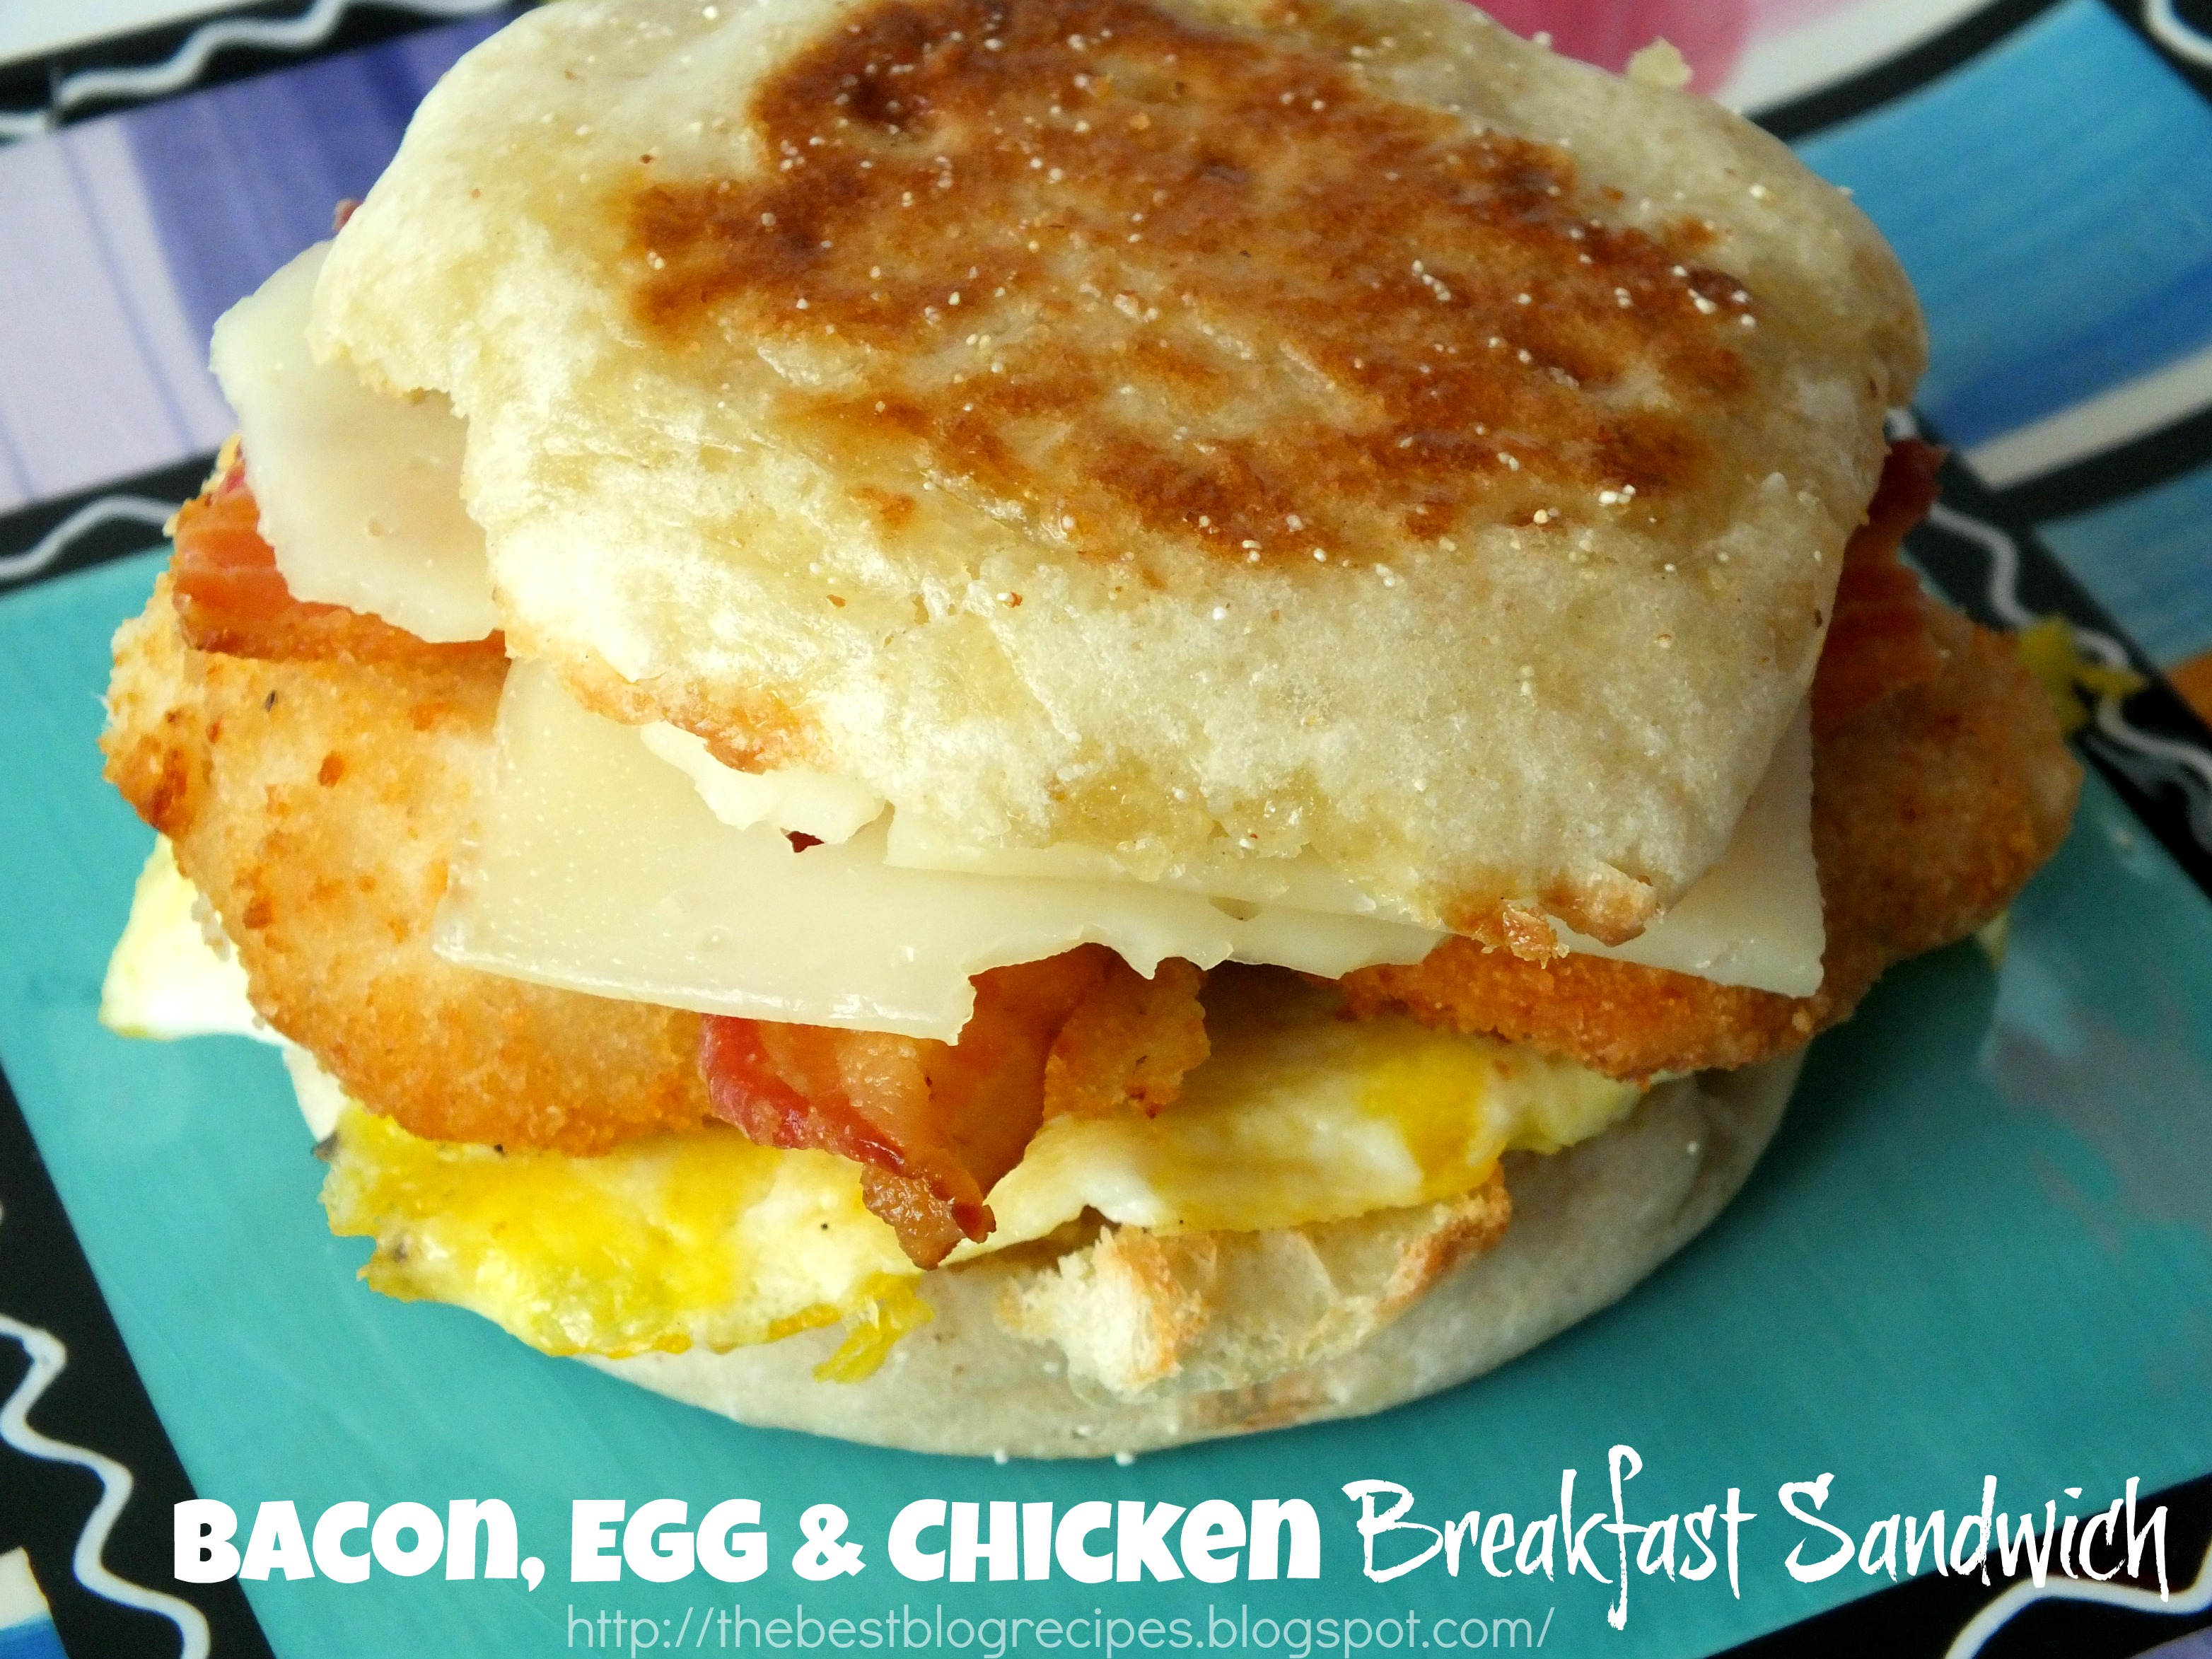 Bacon, Egg & Chicken Breakfast Sandwich